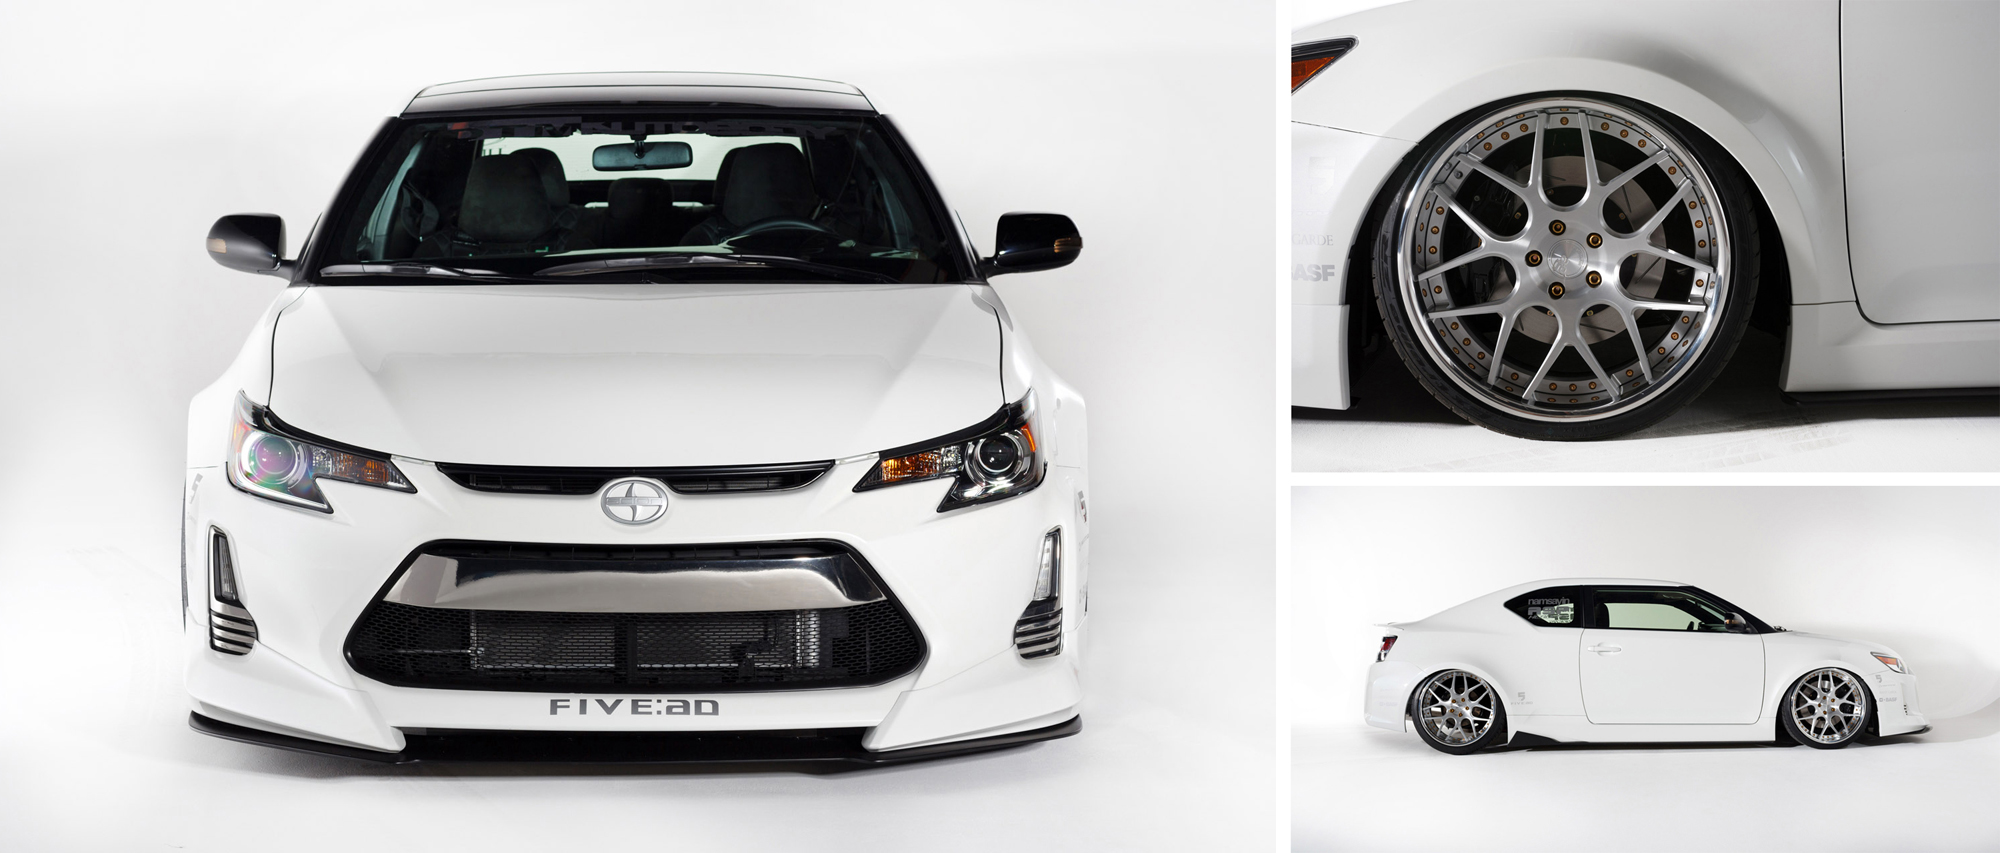 Scion Tc 2014 Tuning >> FIVE:AD 2014 Scion tC Aero Kit - Pre Sale - Scionlife.com